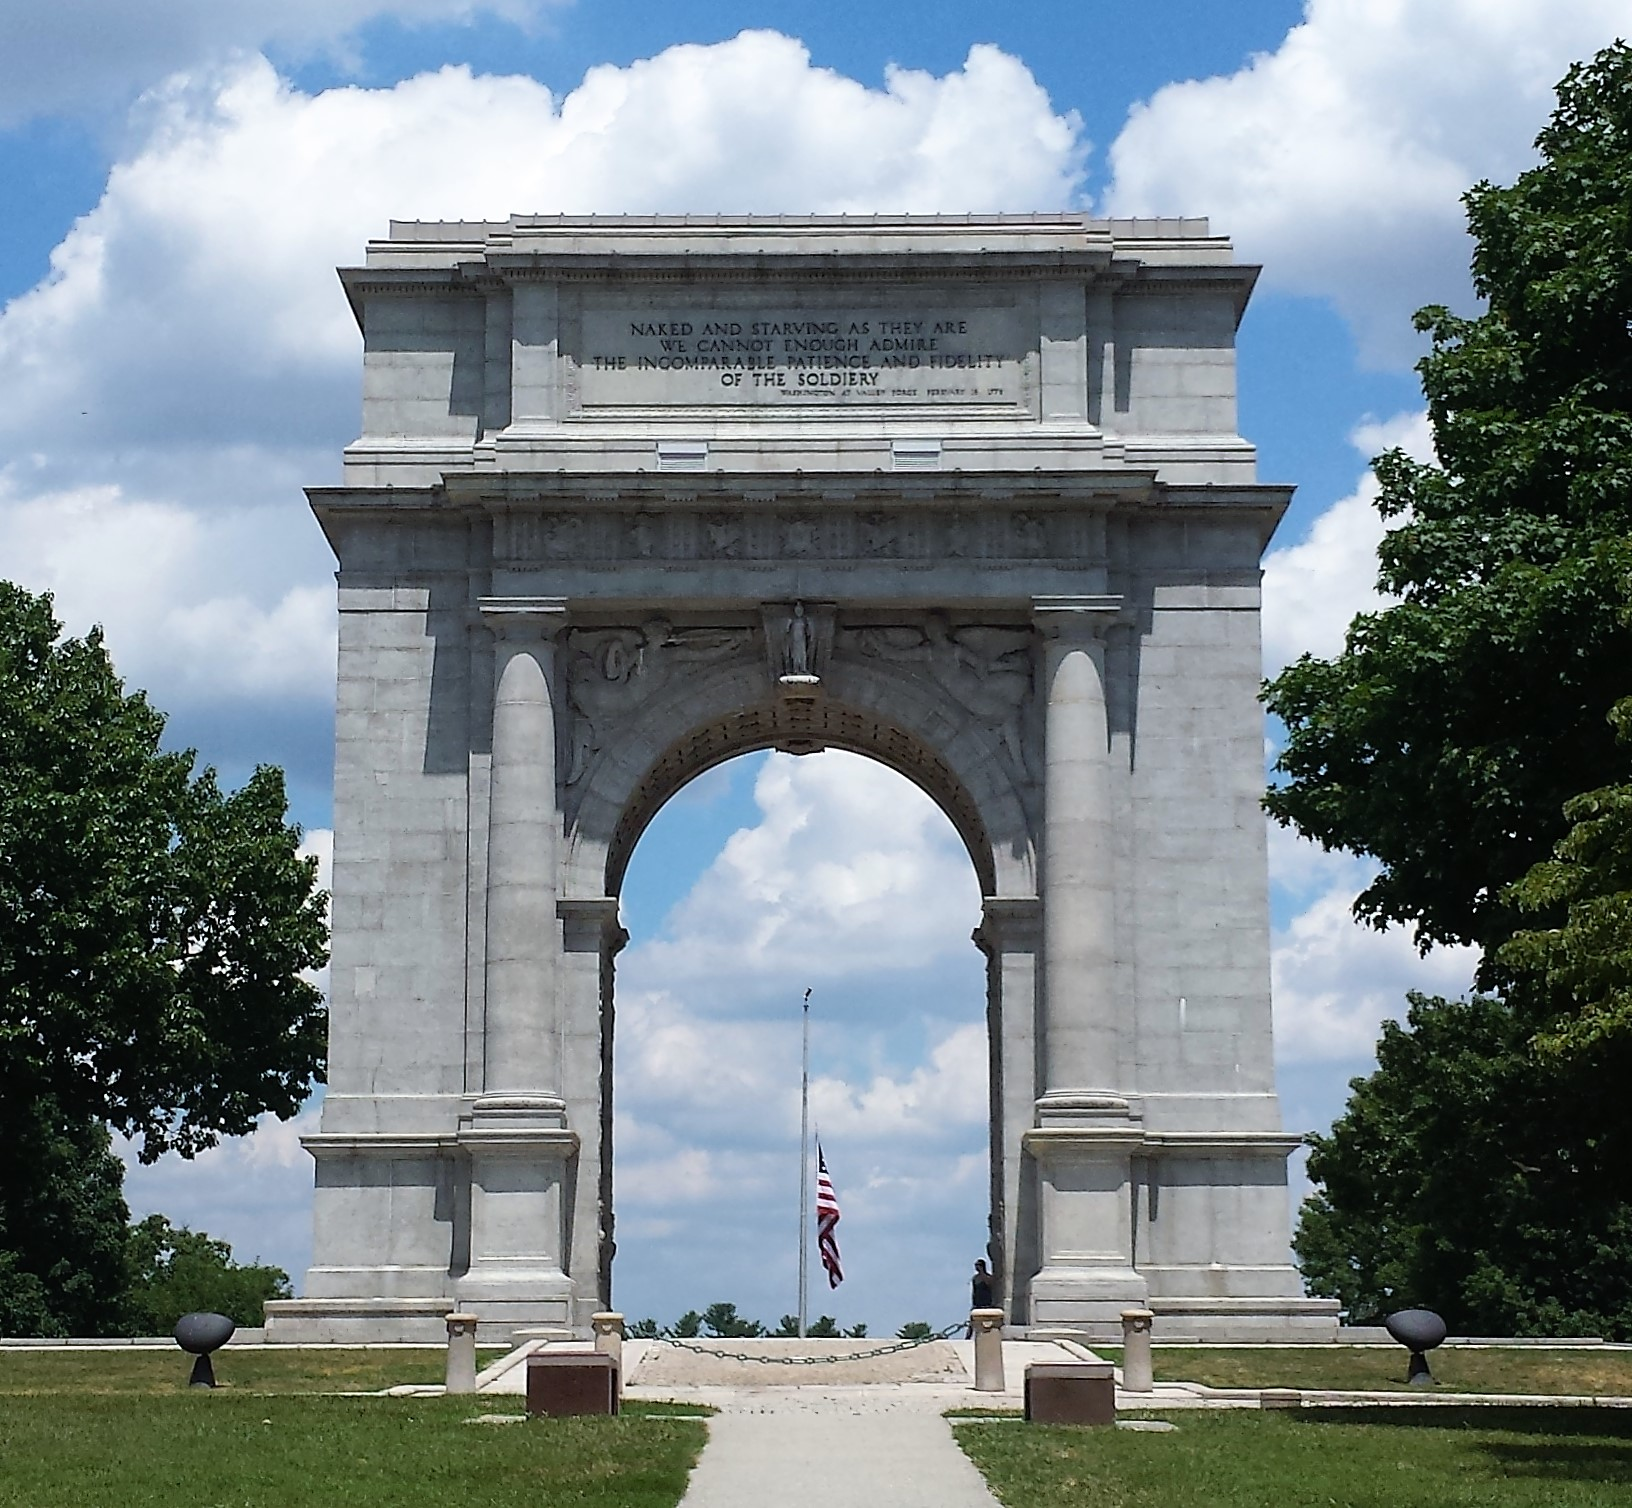 The United States Memorial Arch is situated at the top of a hill in Valley Forge, Pennsylvania. It was built to commemorate the arrival of General George Washington and his Continental Army into Valley Forge.